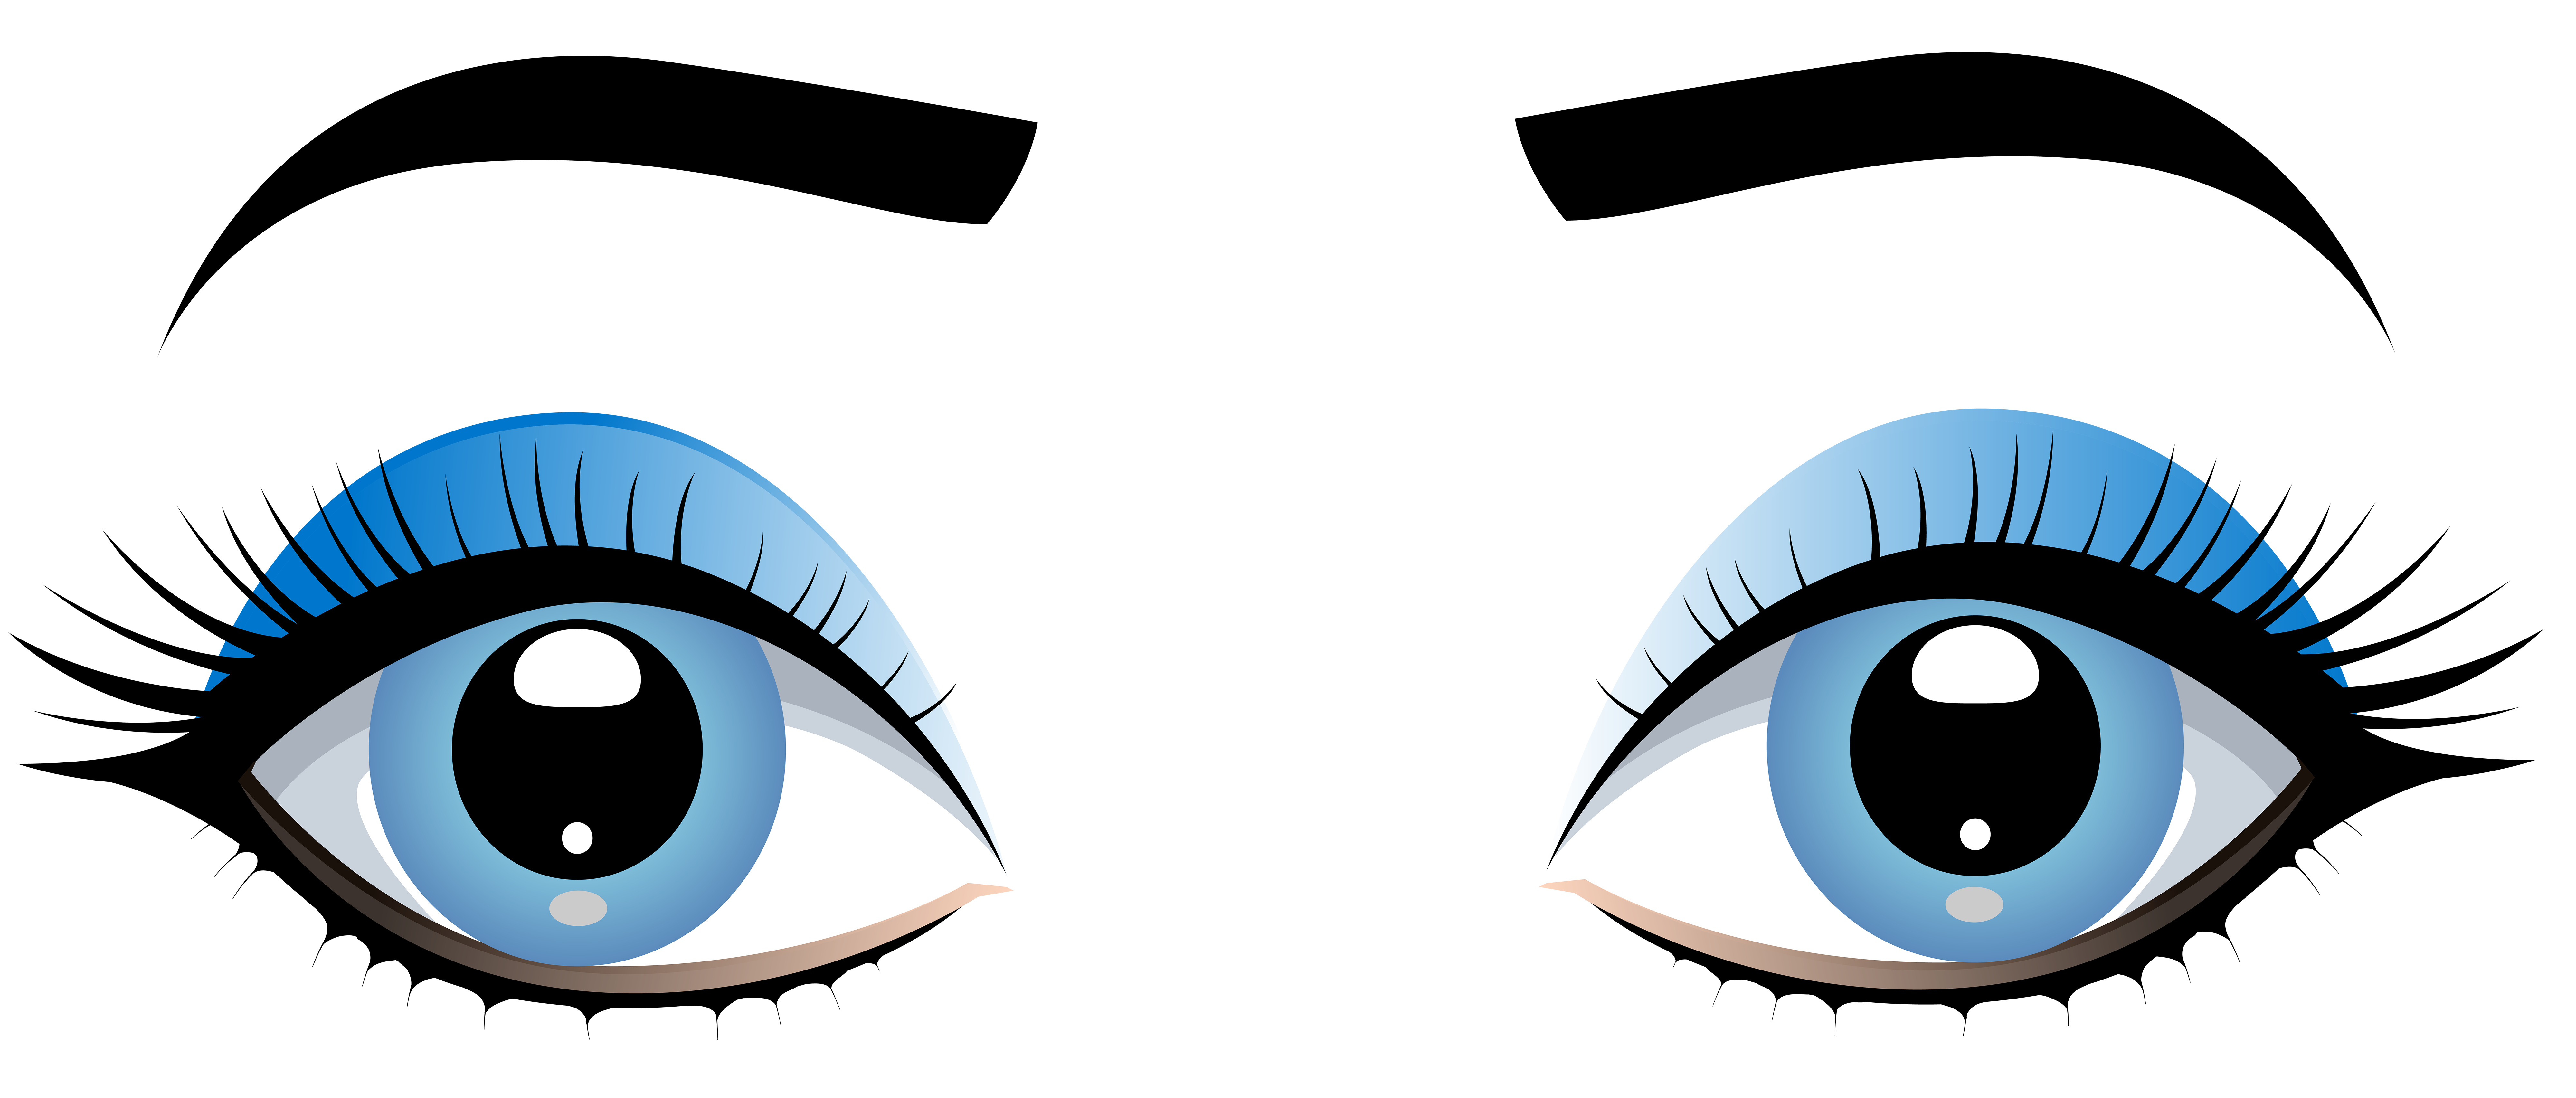 Eye free download on. Zombie clipart eyes